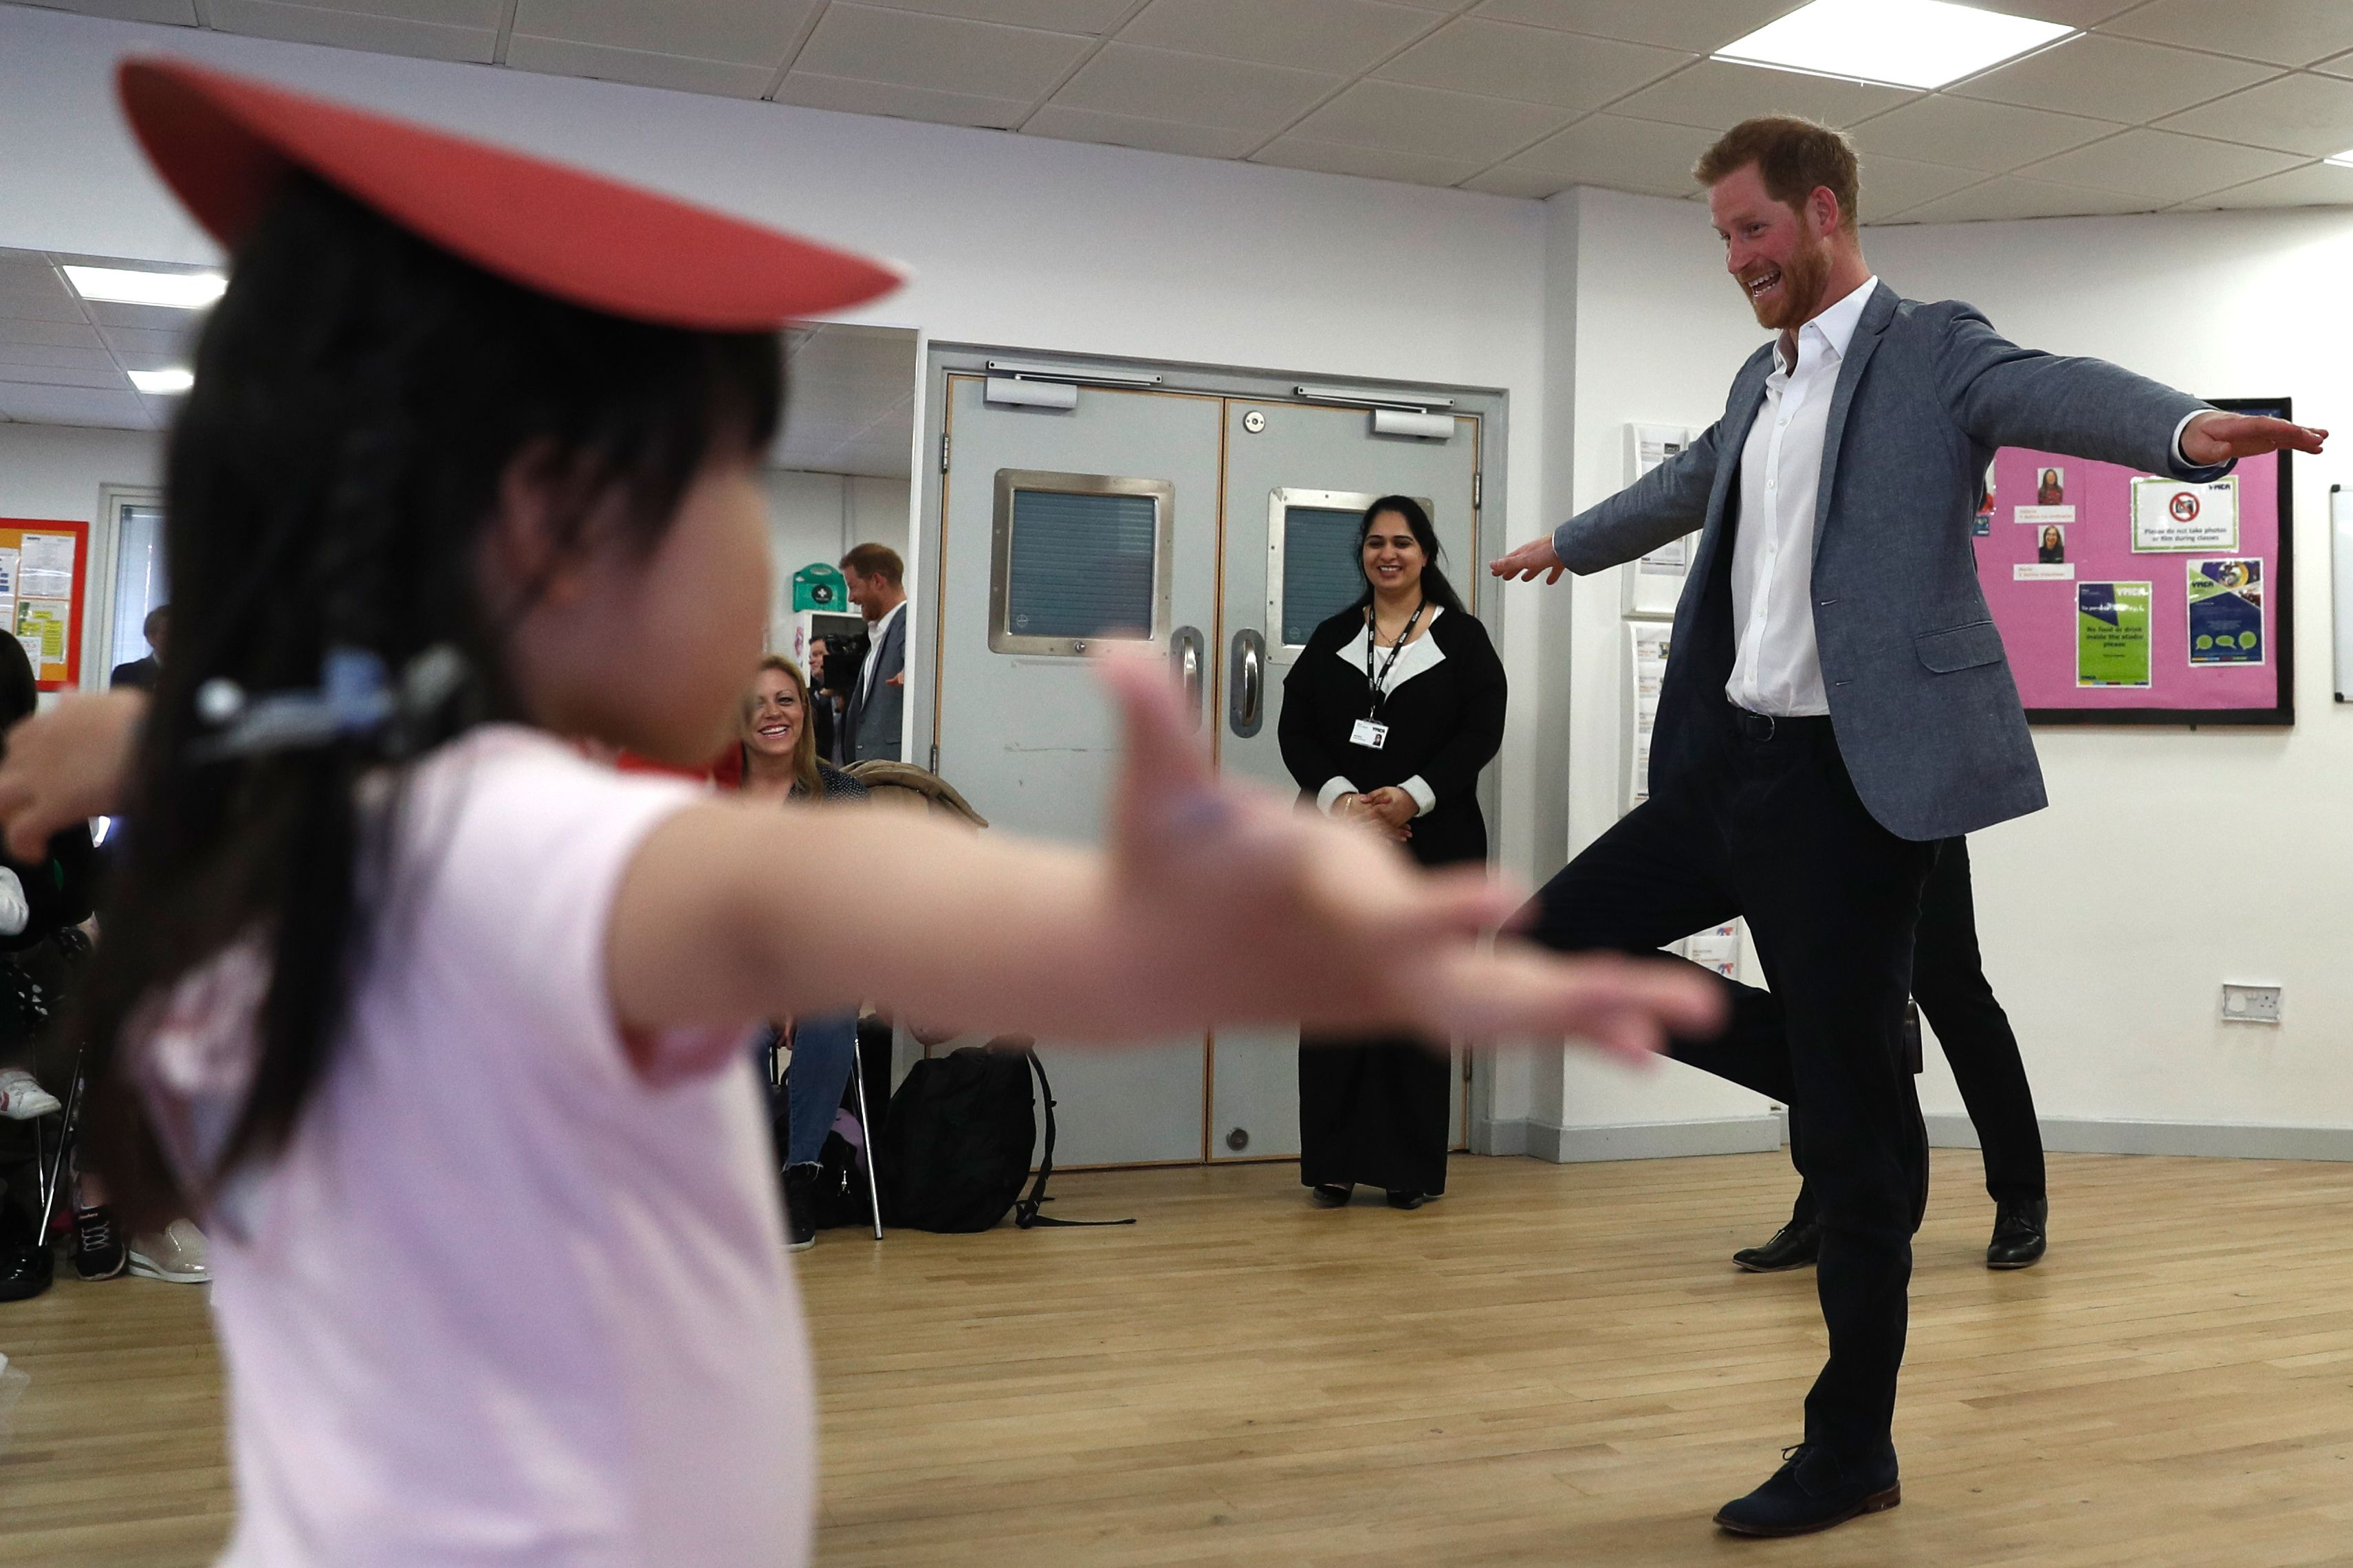 prince harry dancing The Duke Of Sussex Meets Mental Health Organisations During Visit To YMCA